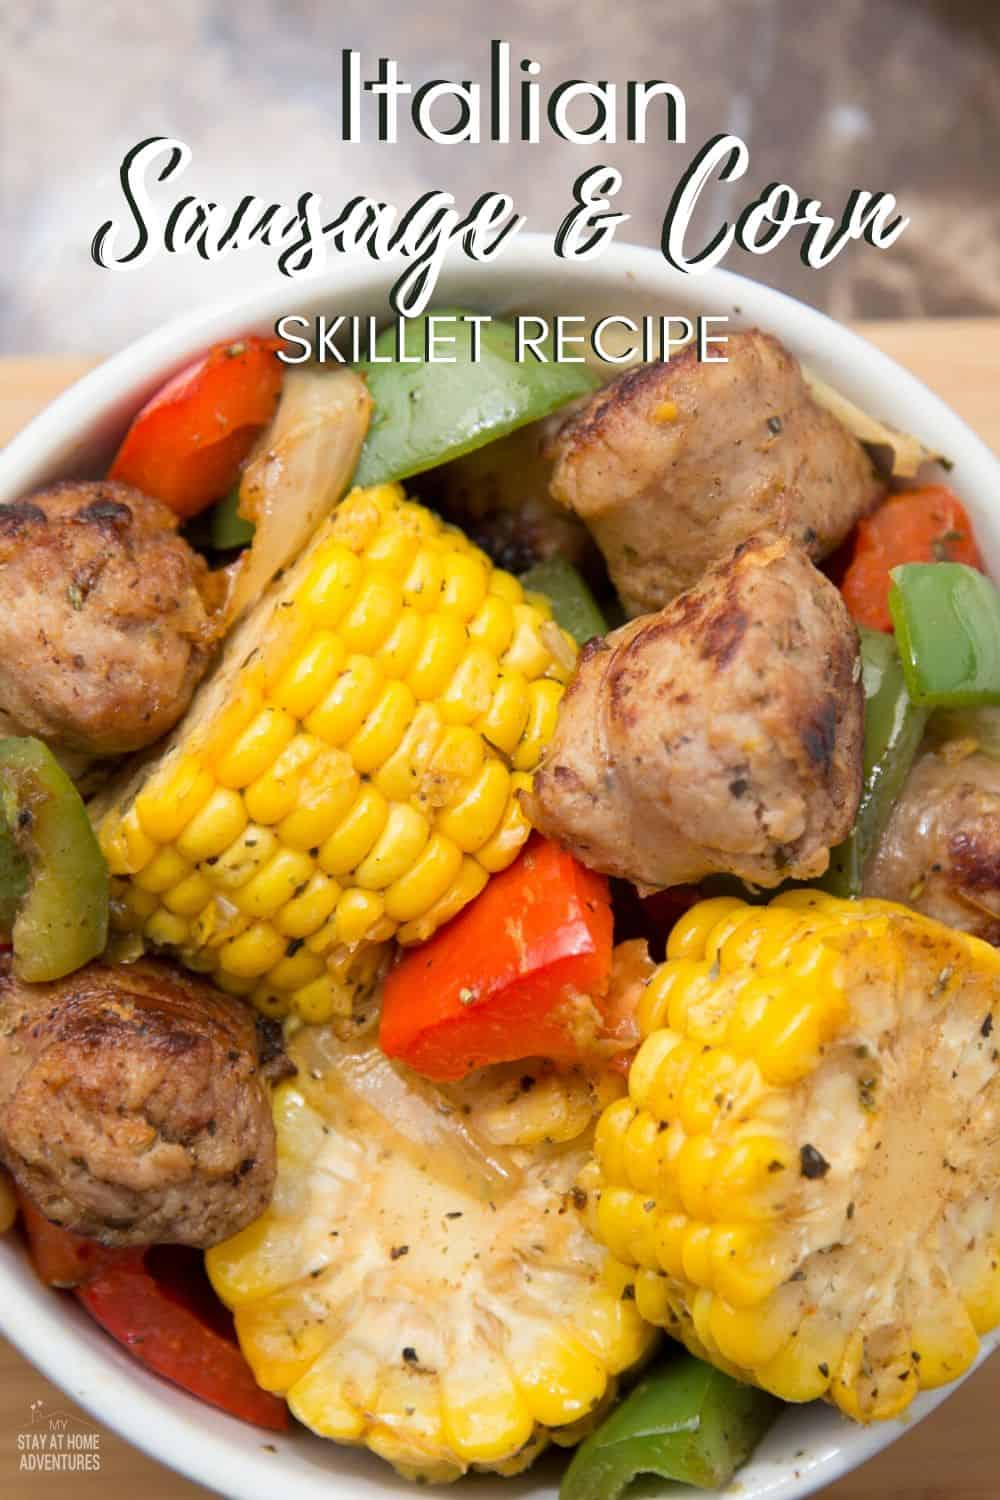 An amazing Italian Sausage and Corn skillet recipe that is full of fresh flavor. Learn how you can make this quick, easy, and affordable corn recipe today. via @mystayathome